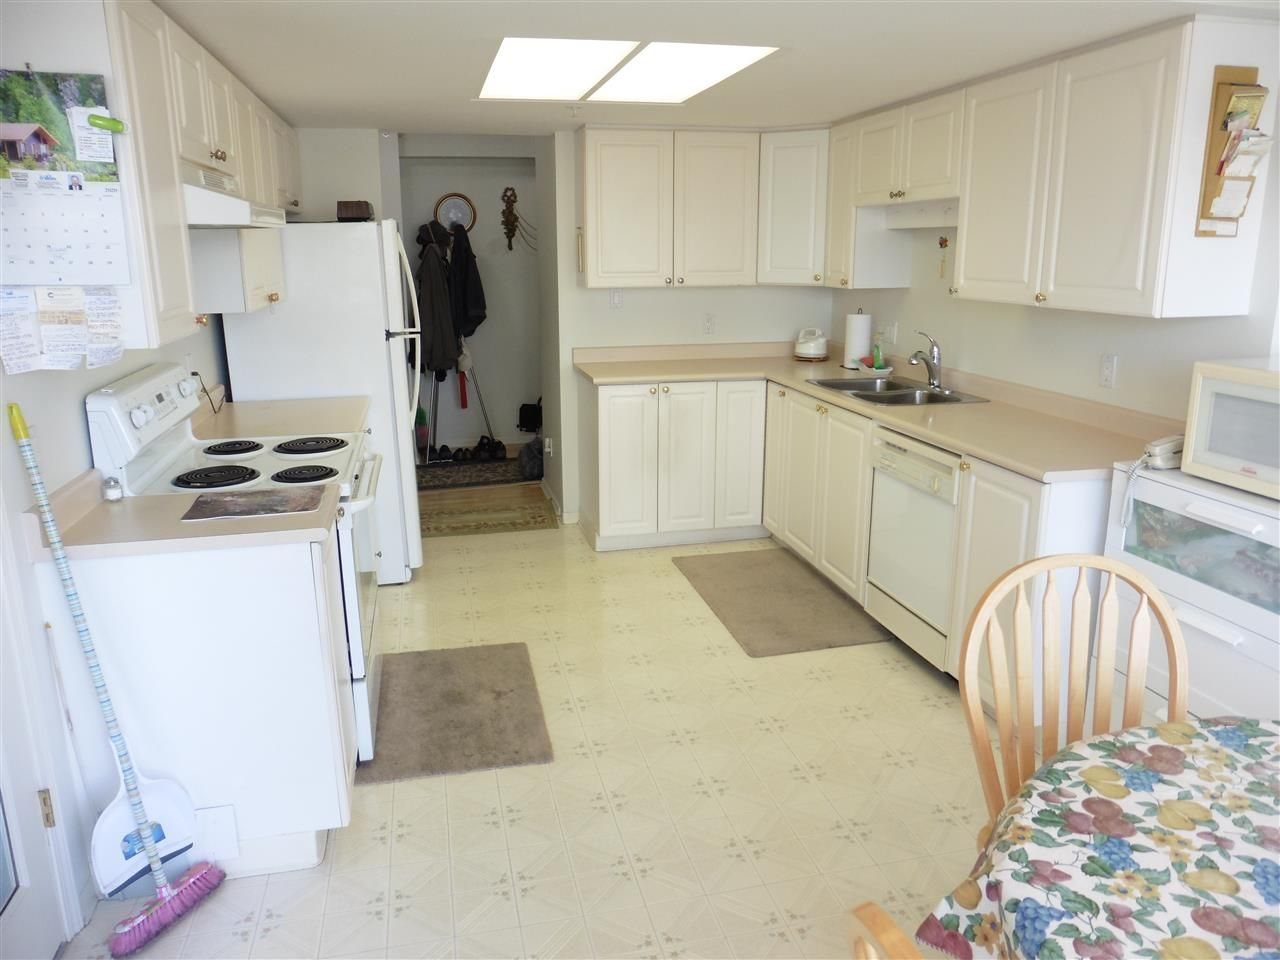 """Photo 7: Photos: 705 728 PRINCESS Street in New Westminster: Uptown NW Condo for sale in """"PRINCESS TOWER"""" : MLS®# R2437425"""